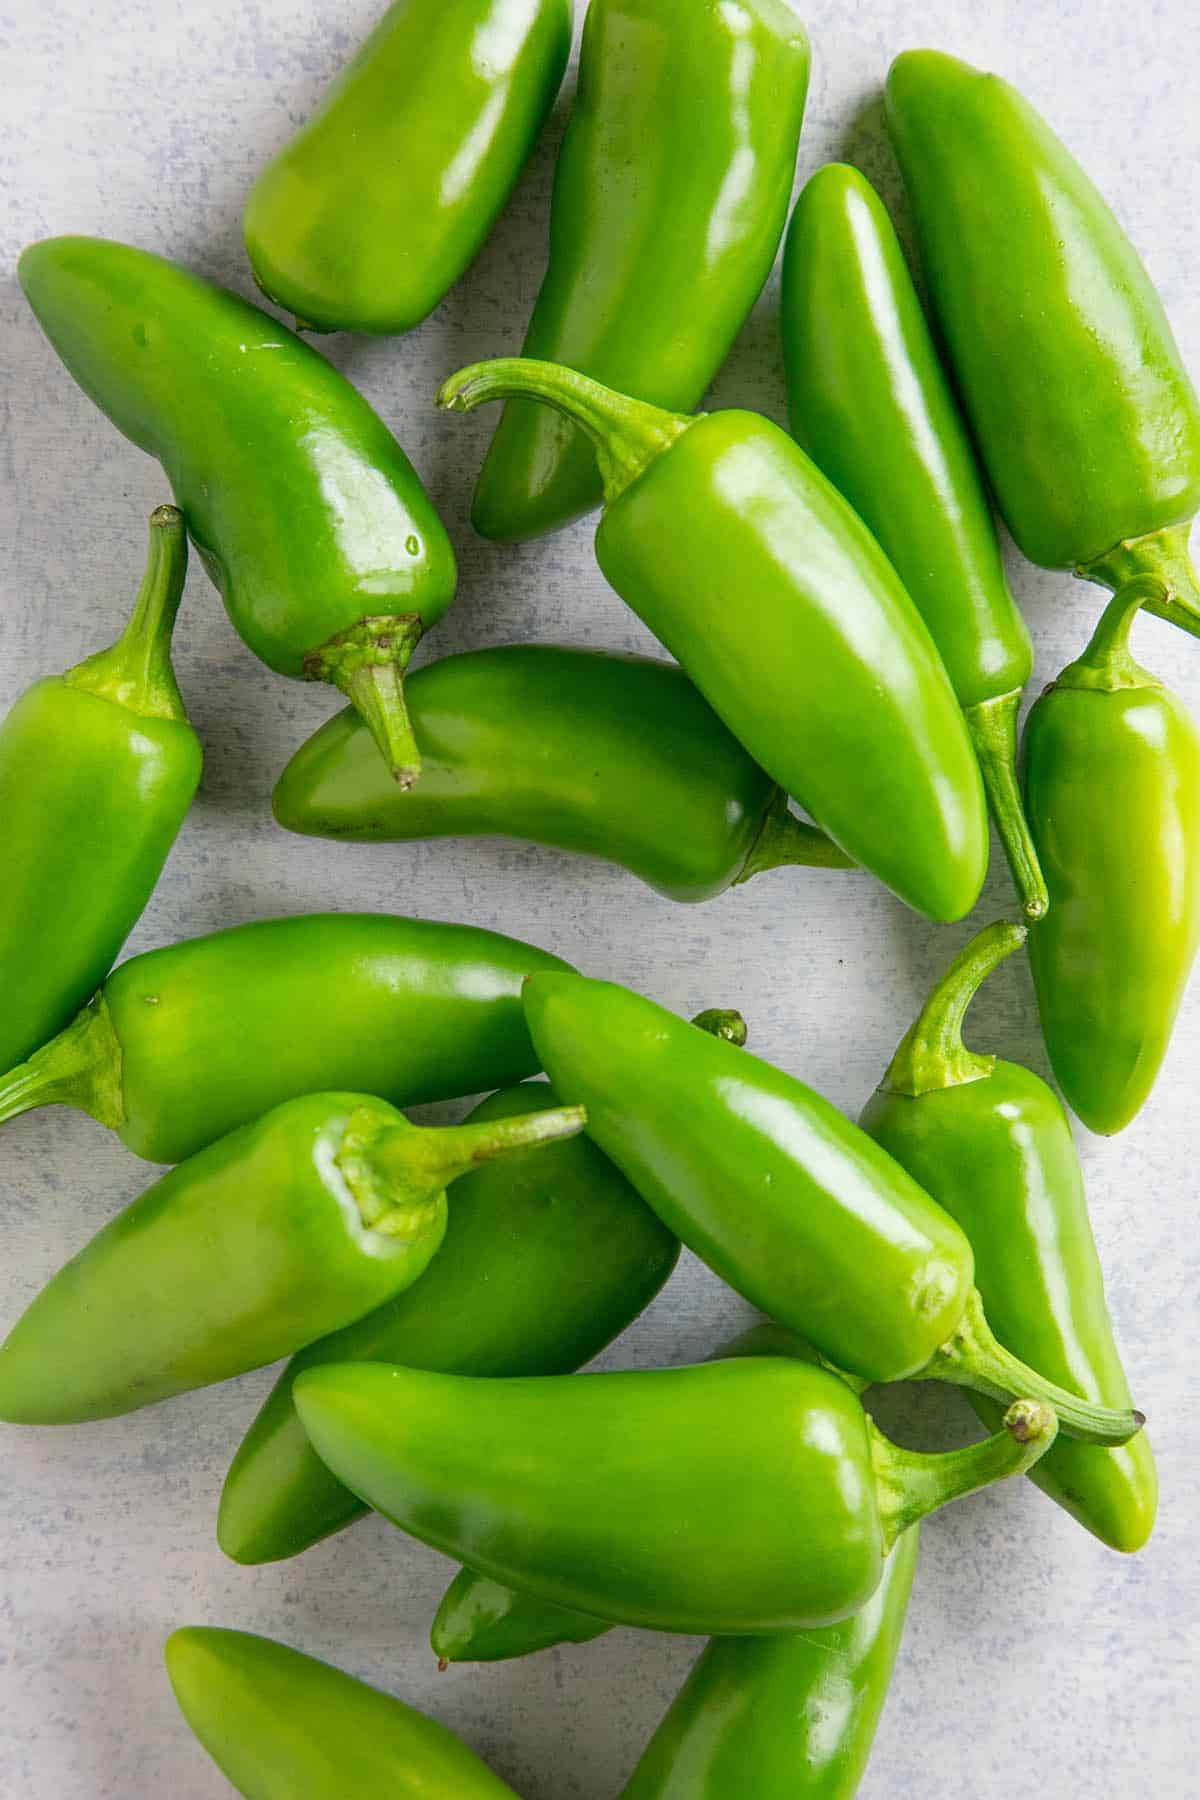 how long does jalapeno burn last on hands